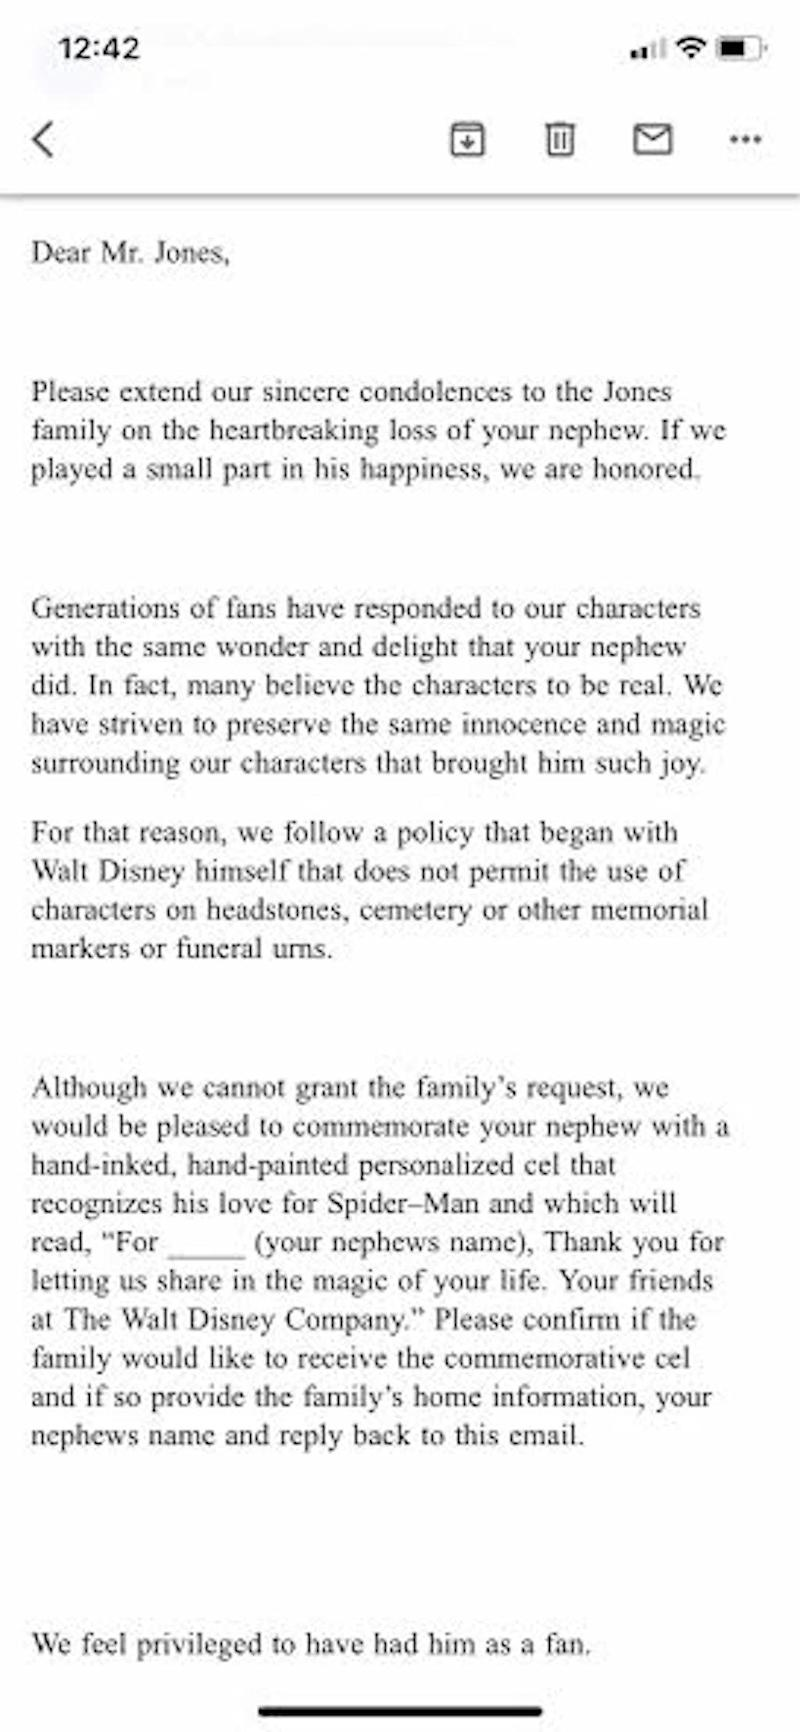 disney denies father's request to put spider-man on son's grave